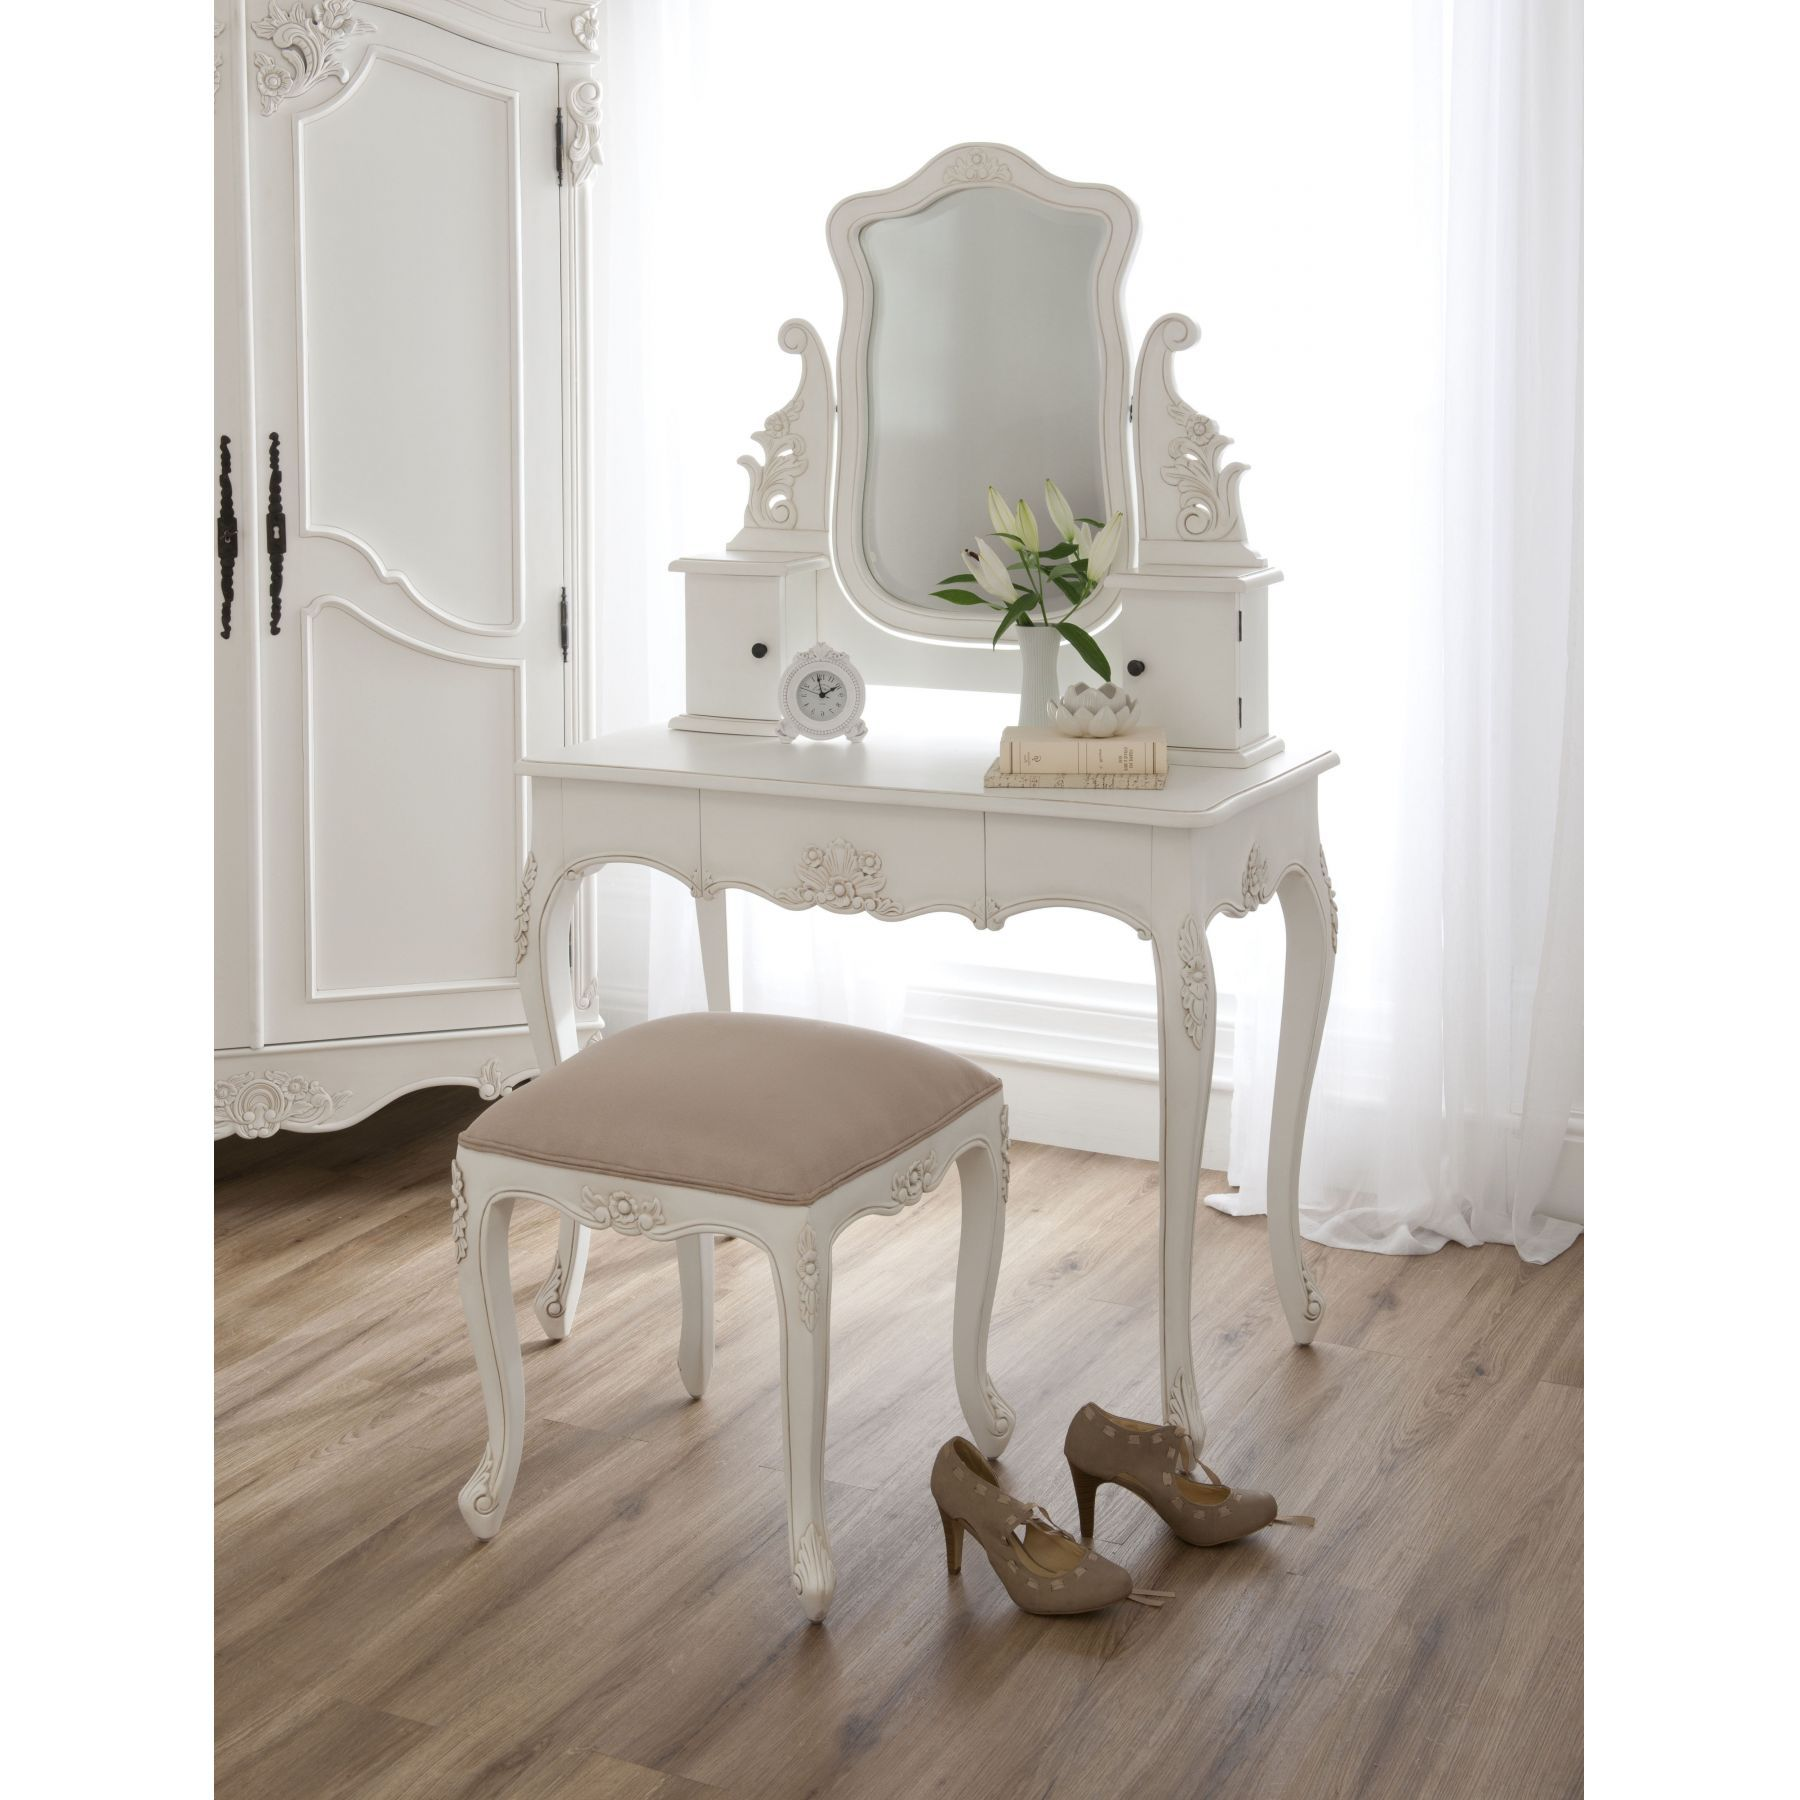 Bedroom dressing table decorating ideas - Inspiration Decor For Dressing Table Simple Design